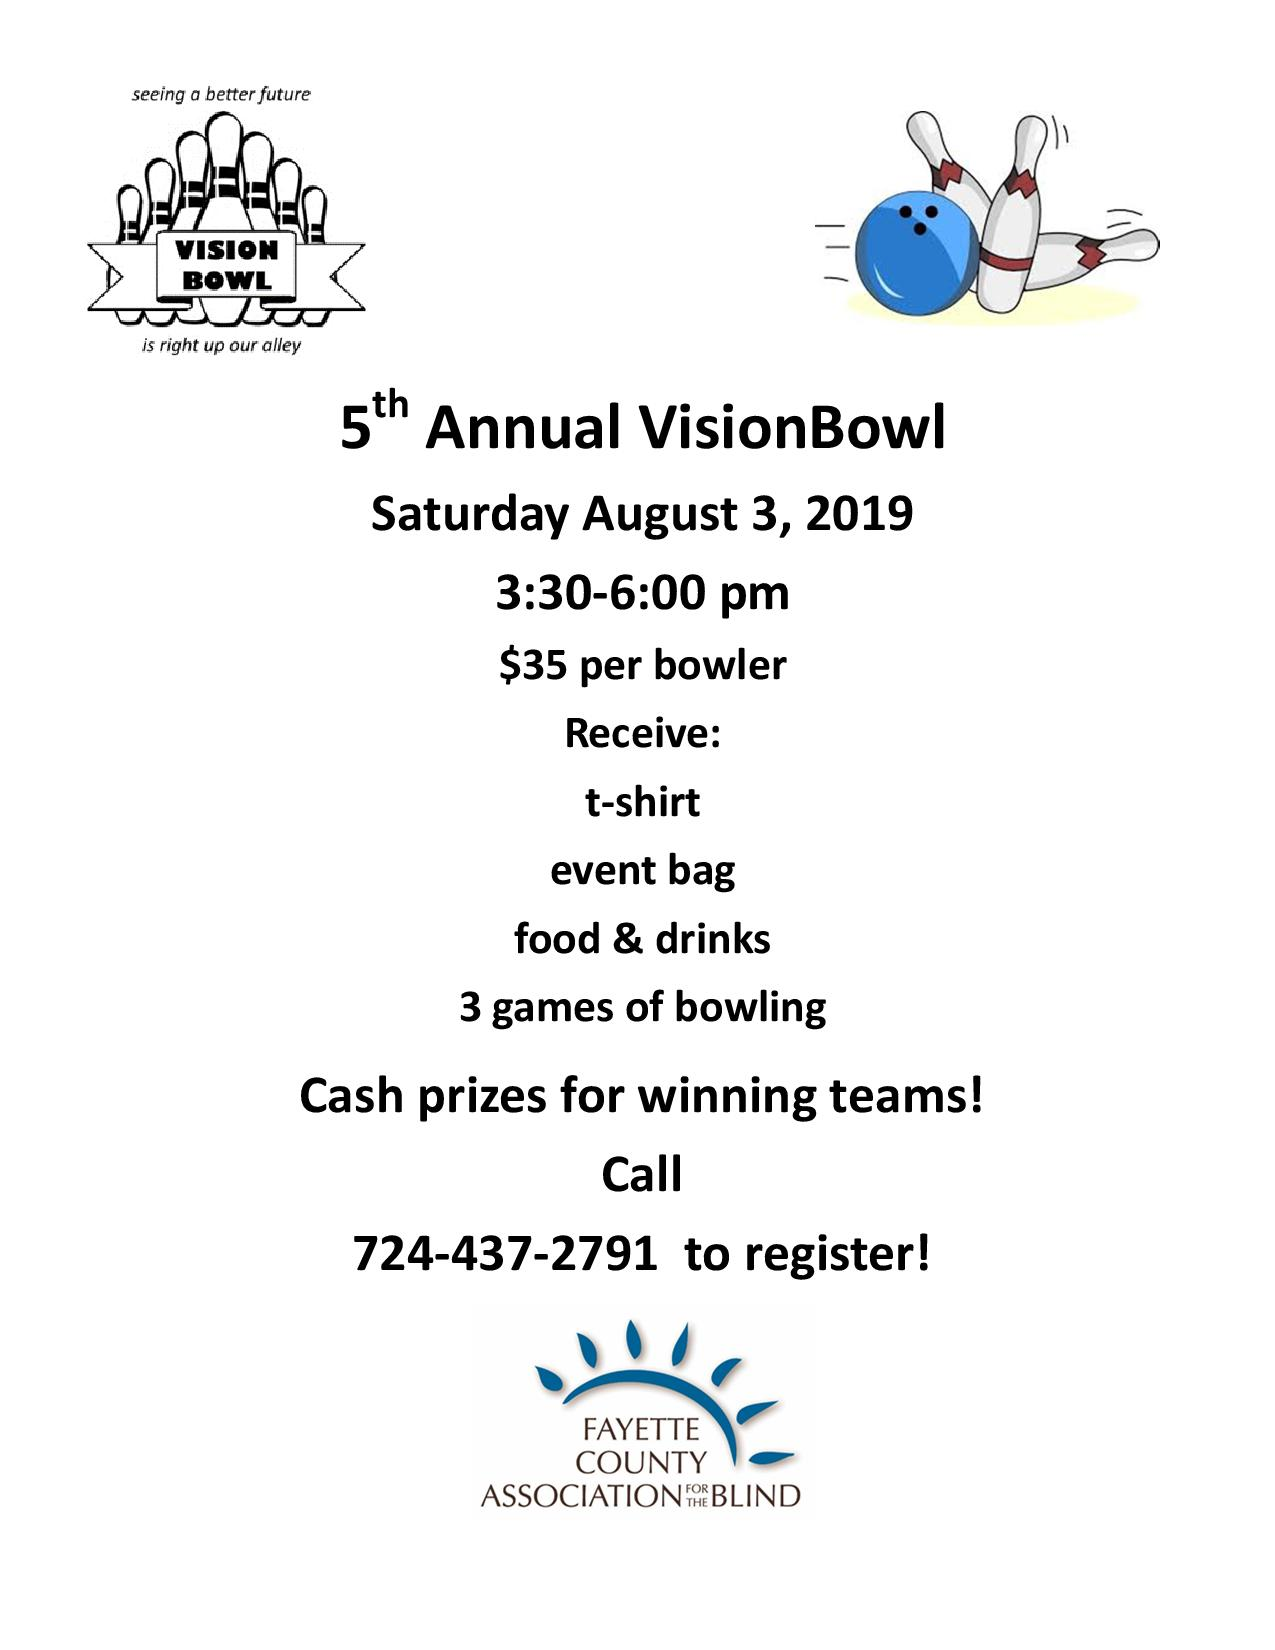 The 5th Annual VisionBowl is scheduled for August 3, 2019. Join us for this fun event!